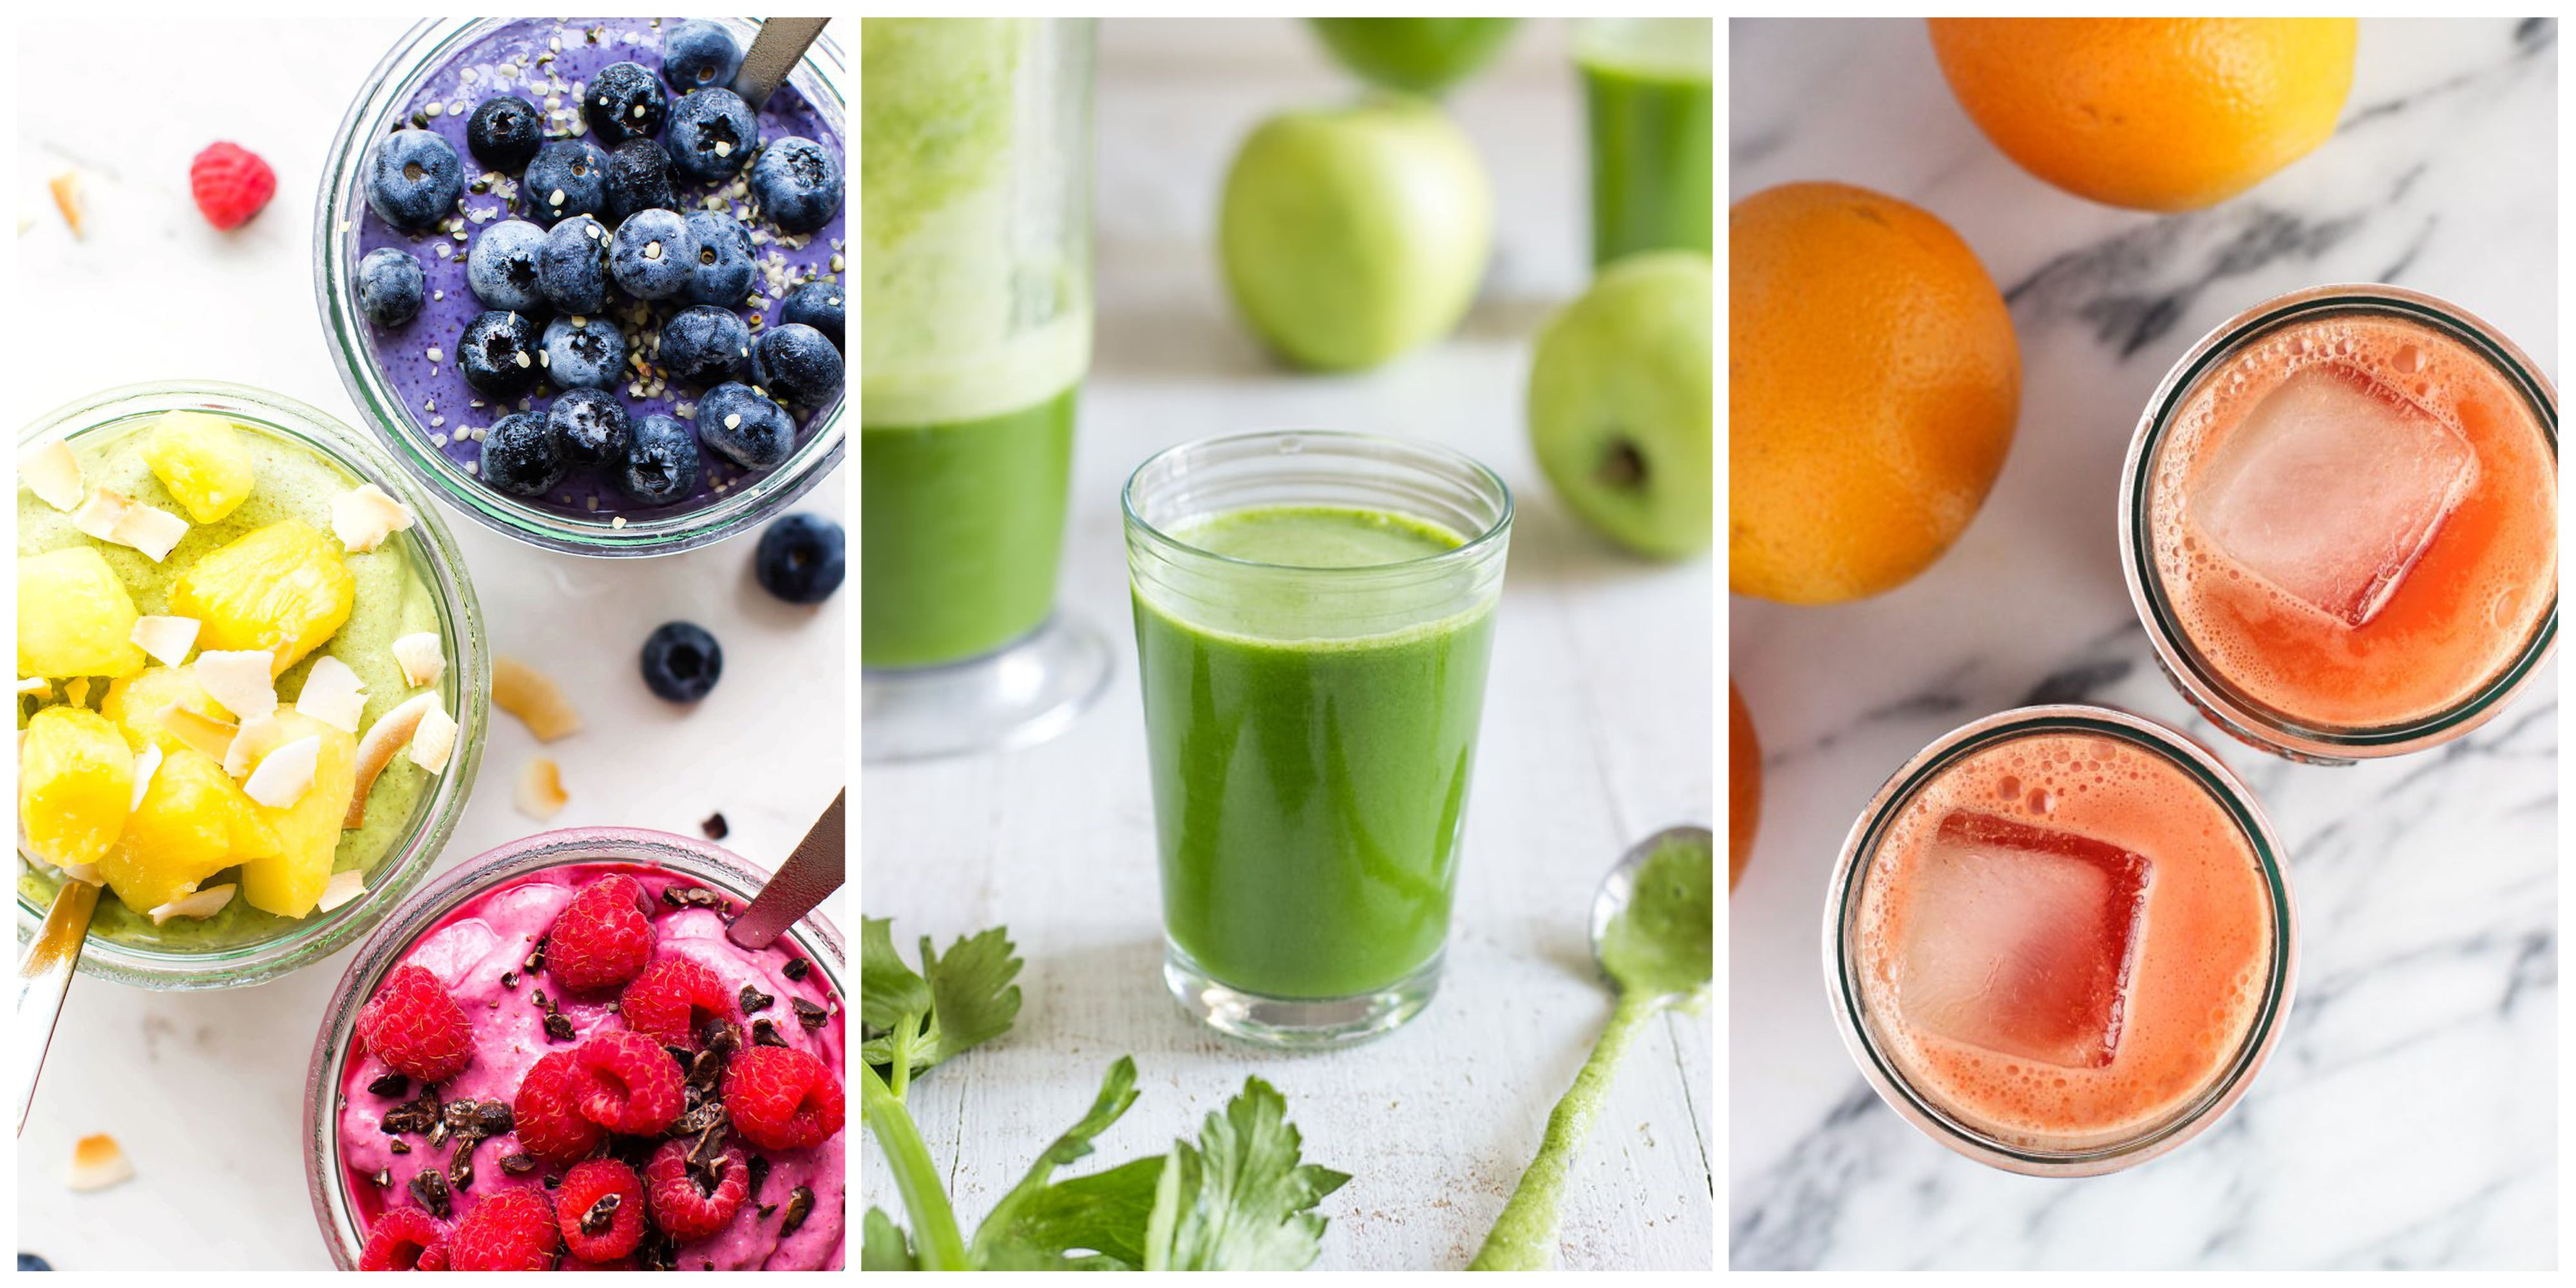 Permalink to Try The following tips For Improving Your Health By Juicing